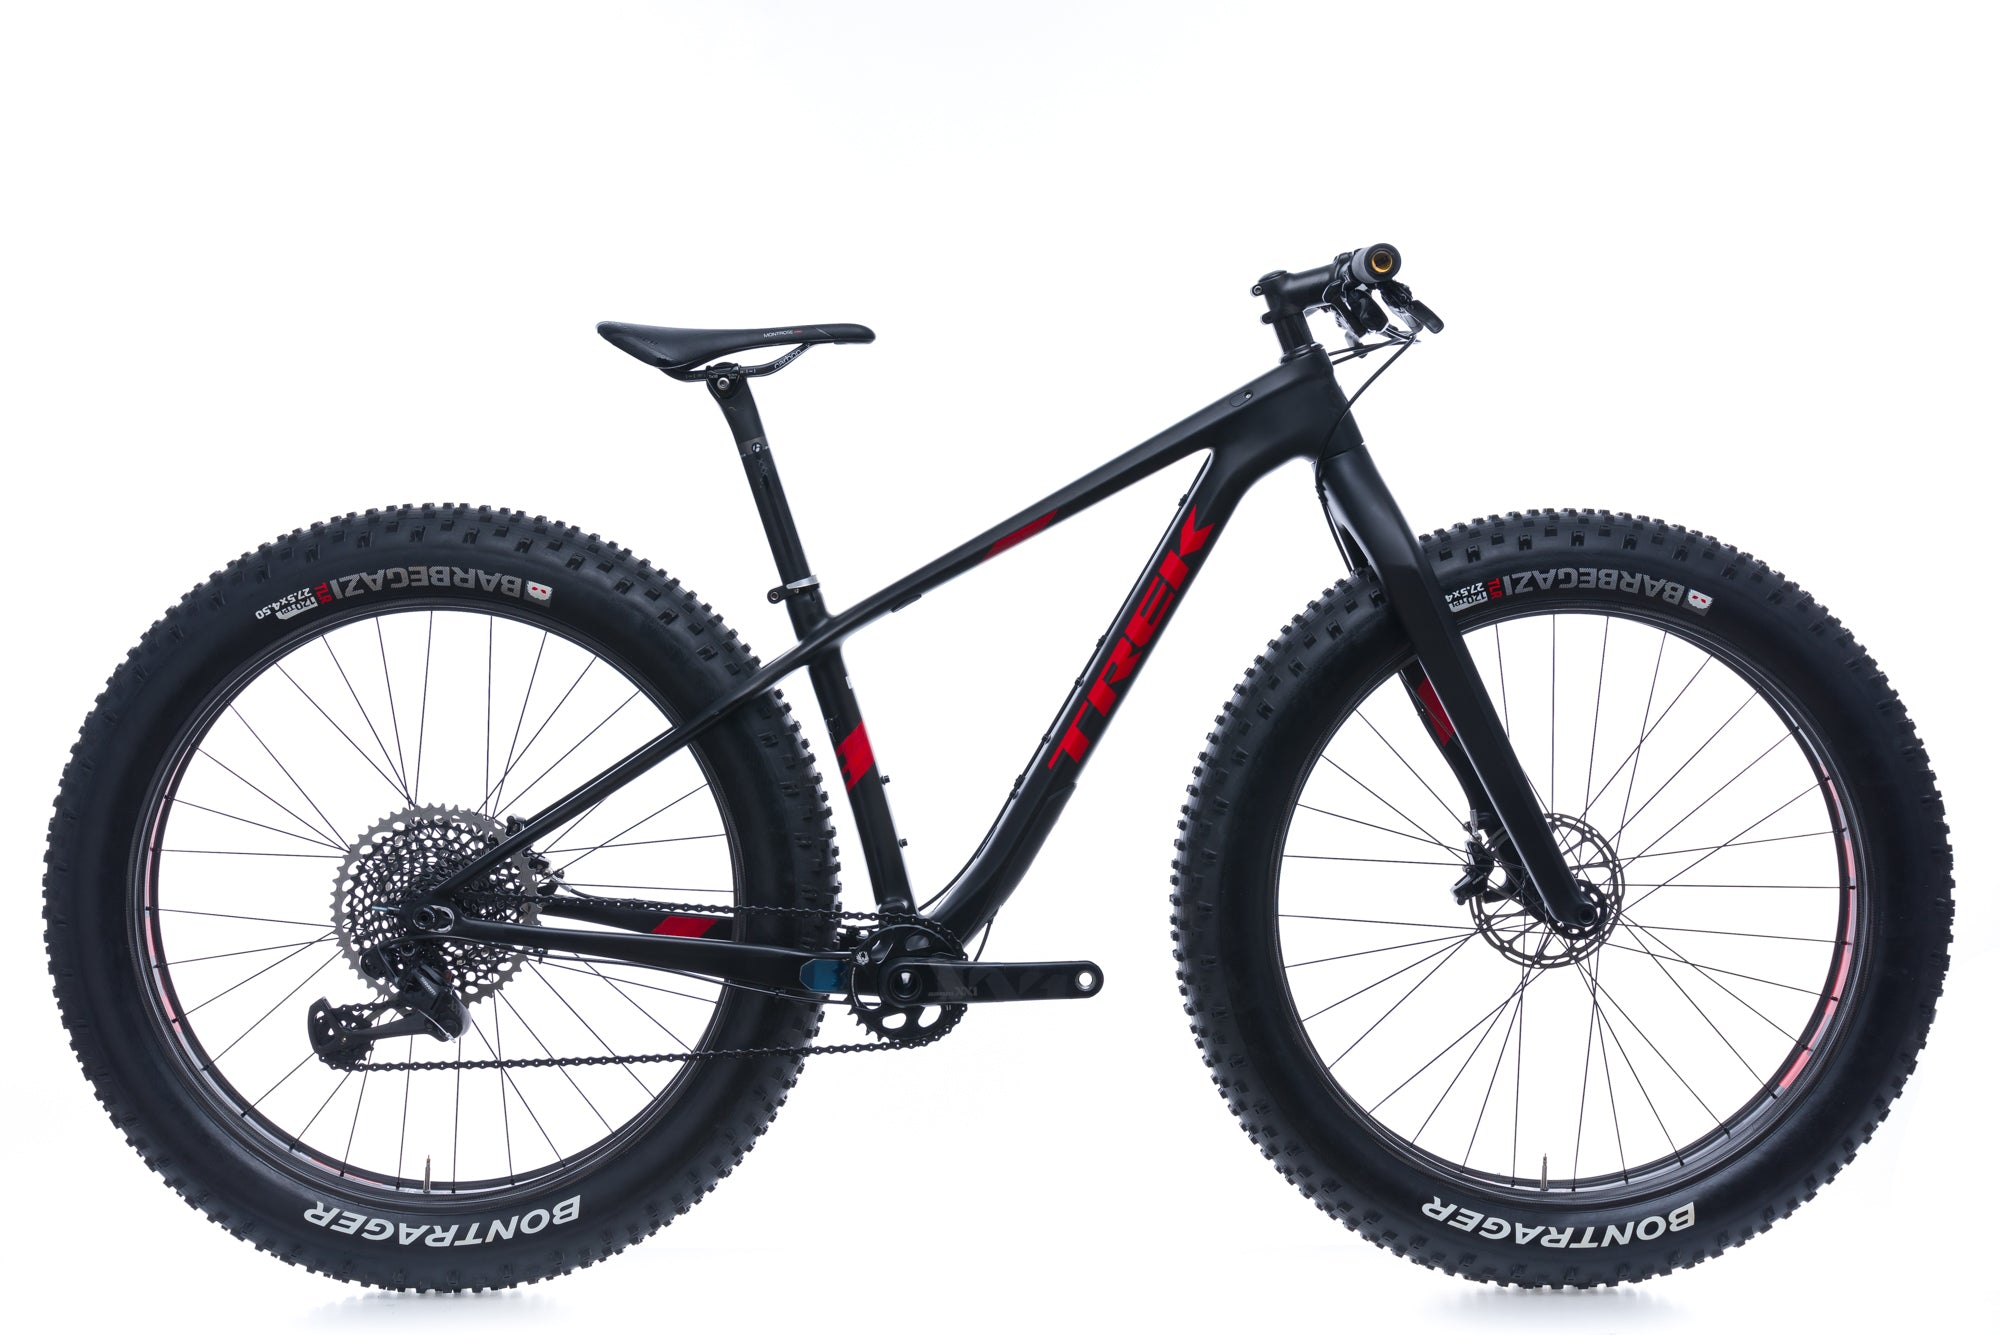 Trek Farley 9.9 15.5in  Bike - 2017 drive side